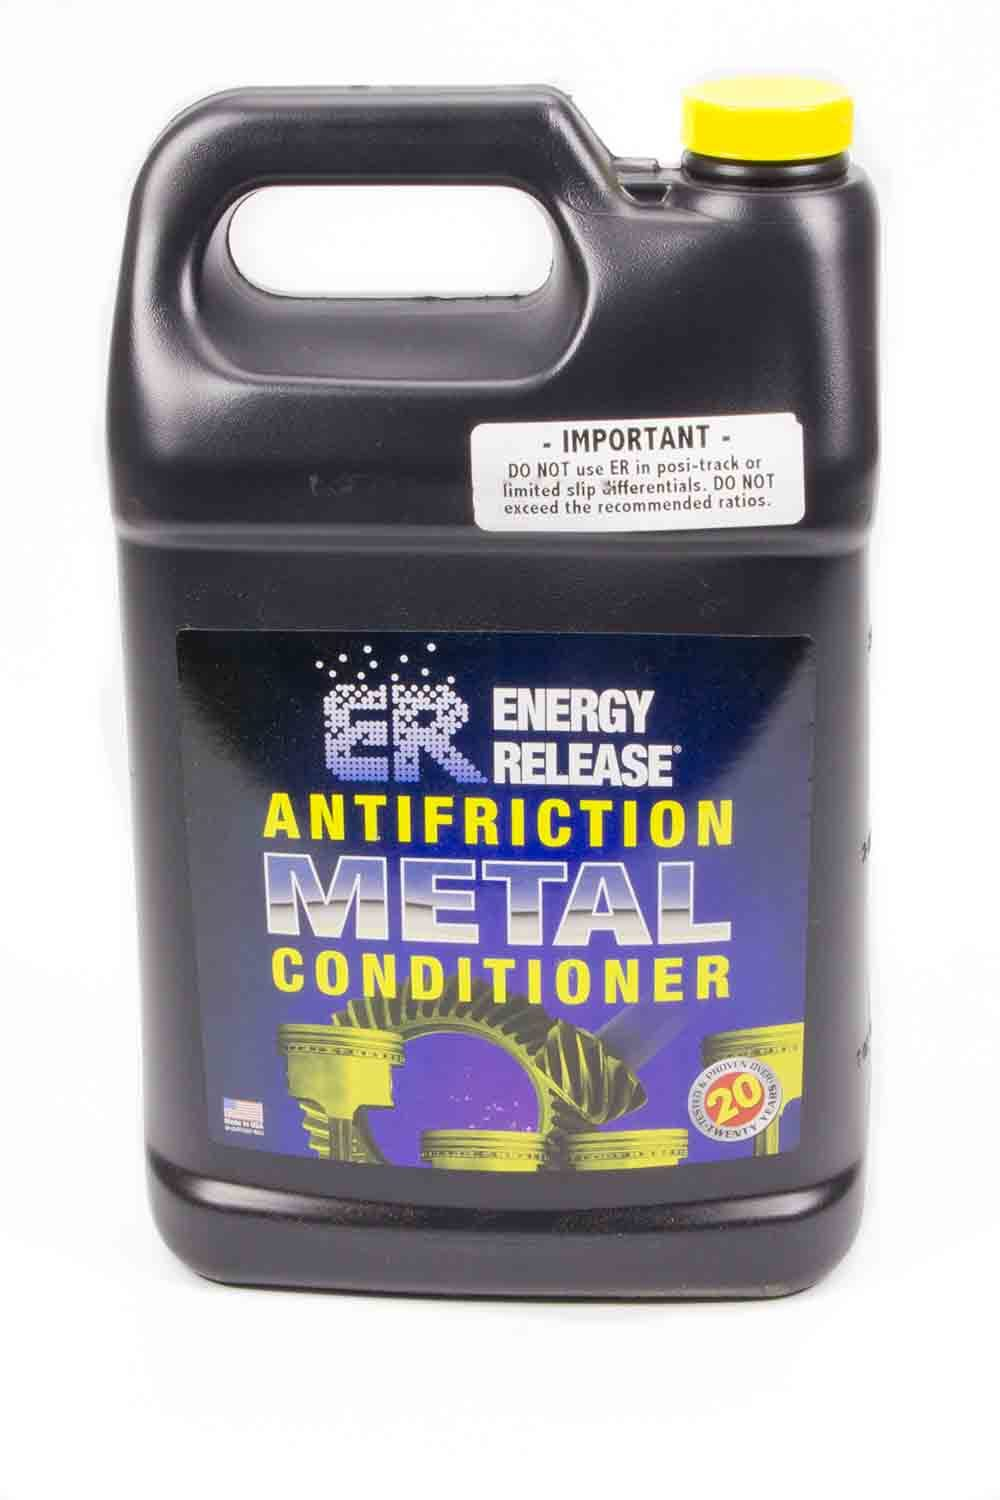 Energy Release P003 Metal Conditioner, ER Antifriction Metal Treatment, 1 gal Bottle, Each